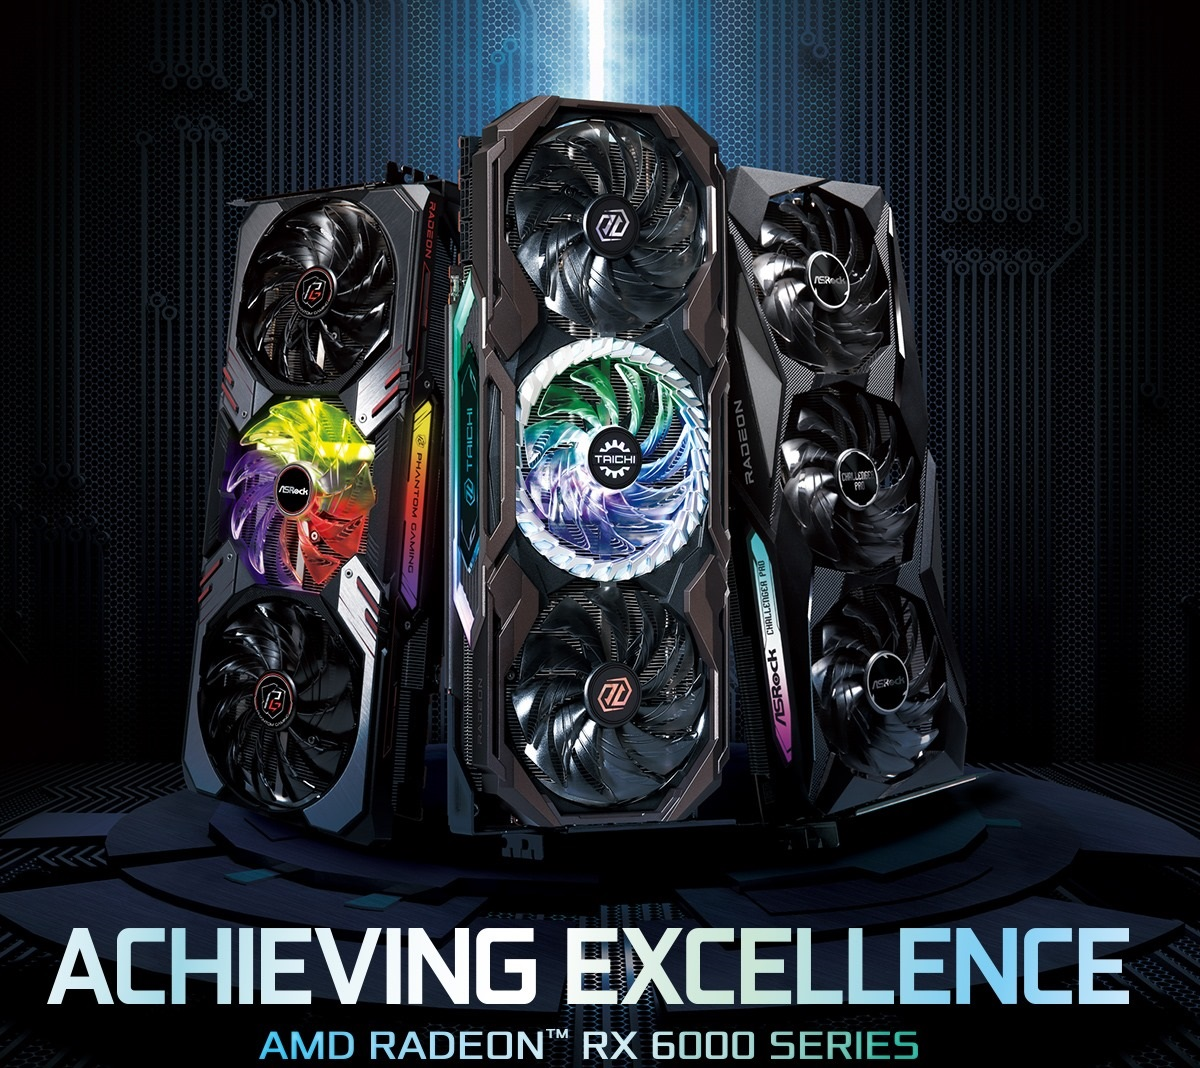 amd-radeon-rx-6600-xt-&-rx-6600-custom-graphics-cards-from-asrock-spotted-with-8-gb-gddr6-memory